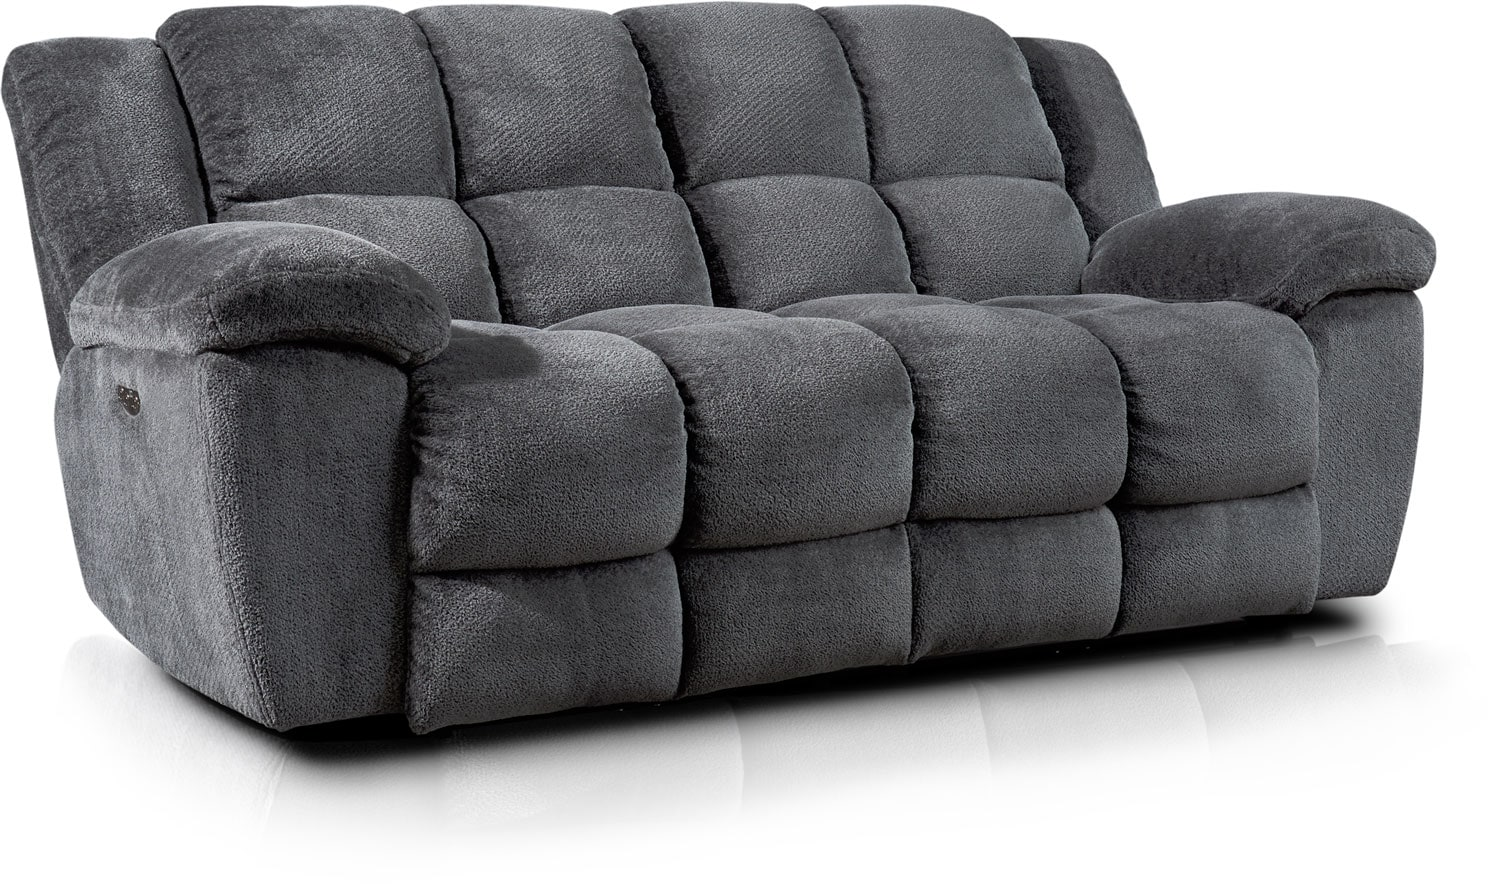 Living Room Furniture - Mellow Dual-Power Reclining Sofa - Gray